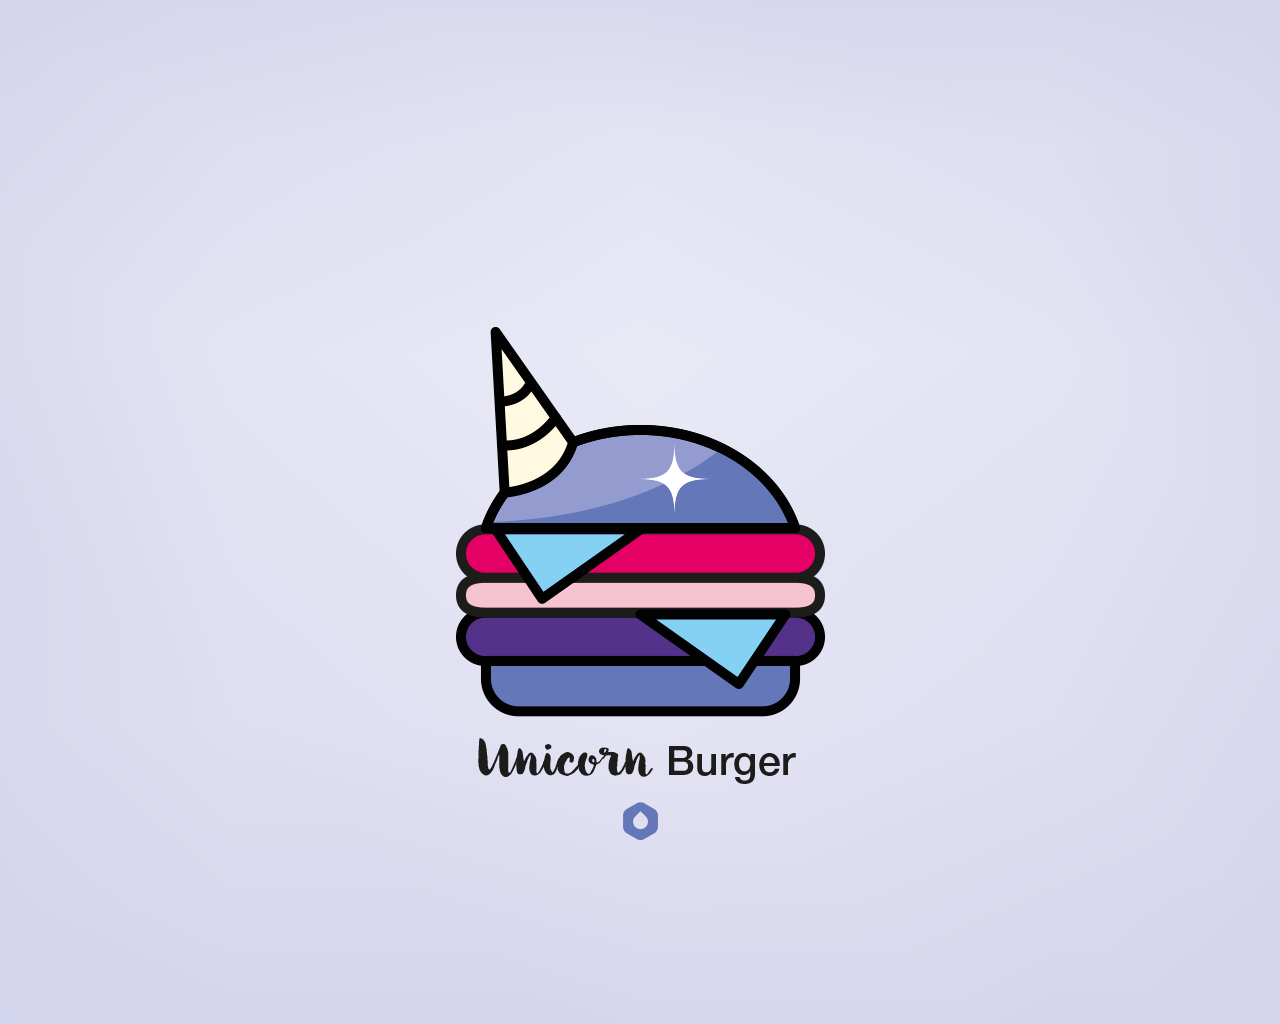 Wallpaper Pick Your Burger - Desktop - Unicorn